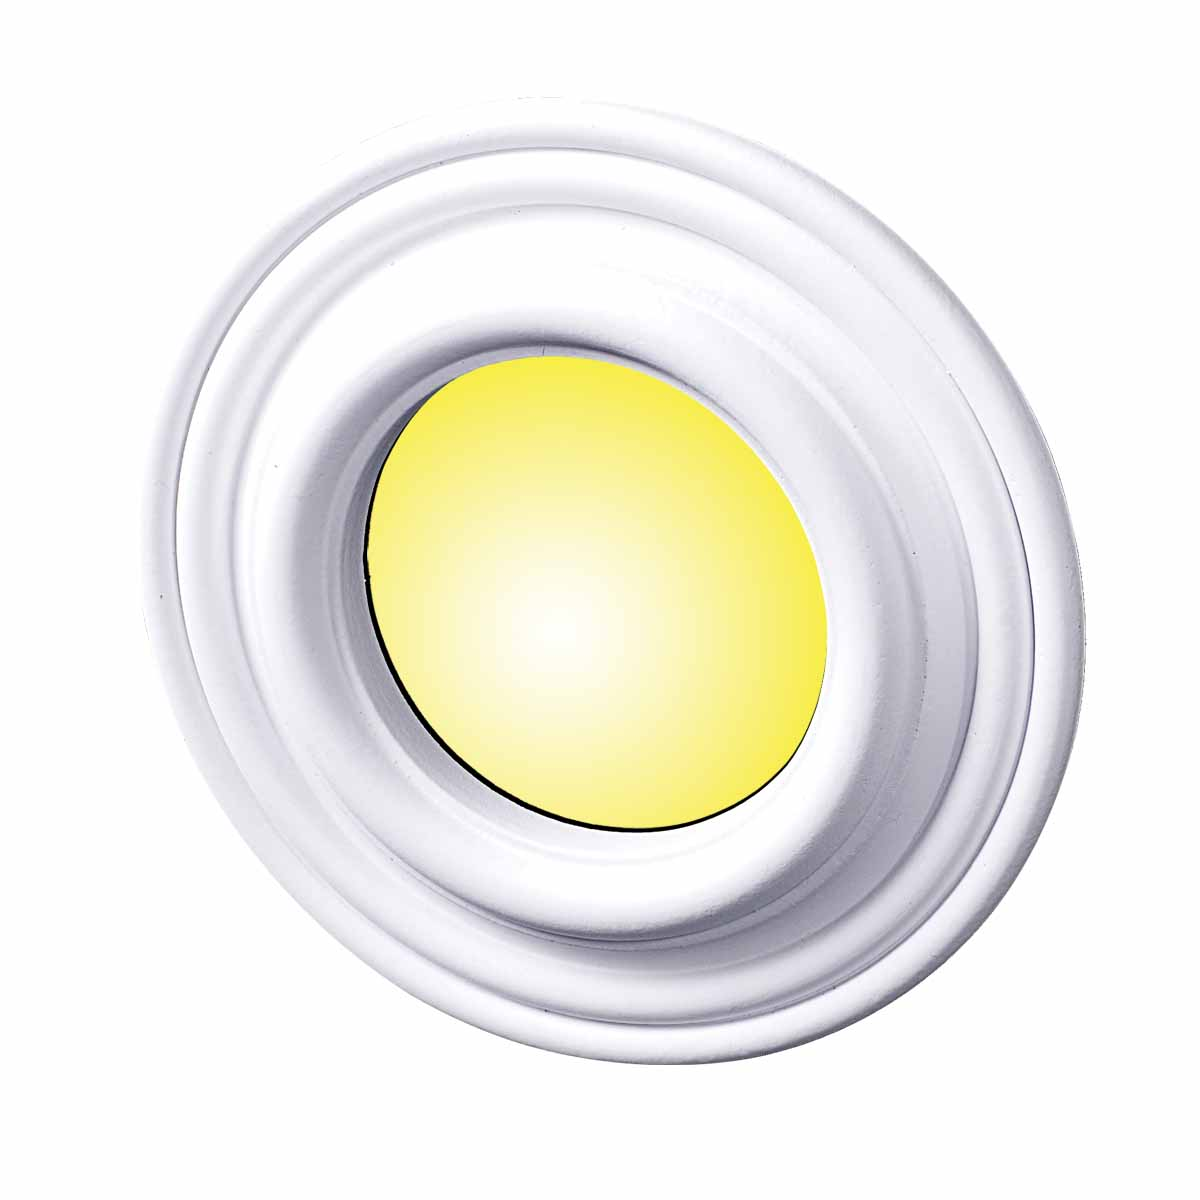 10 Spot Light Ring White Trim 4 ID X 8 OD Mini Medallion